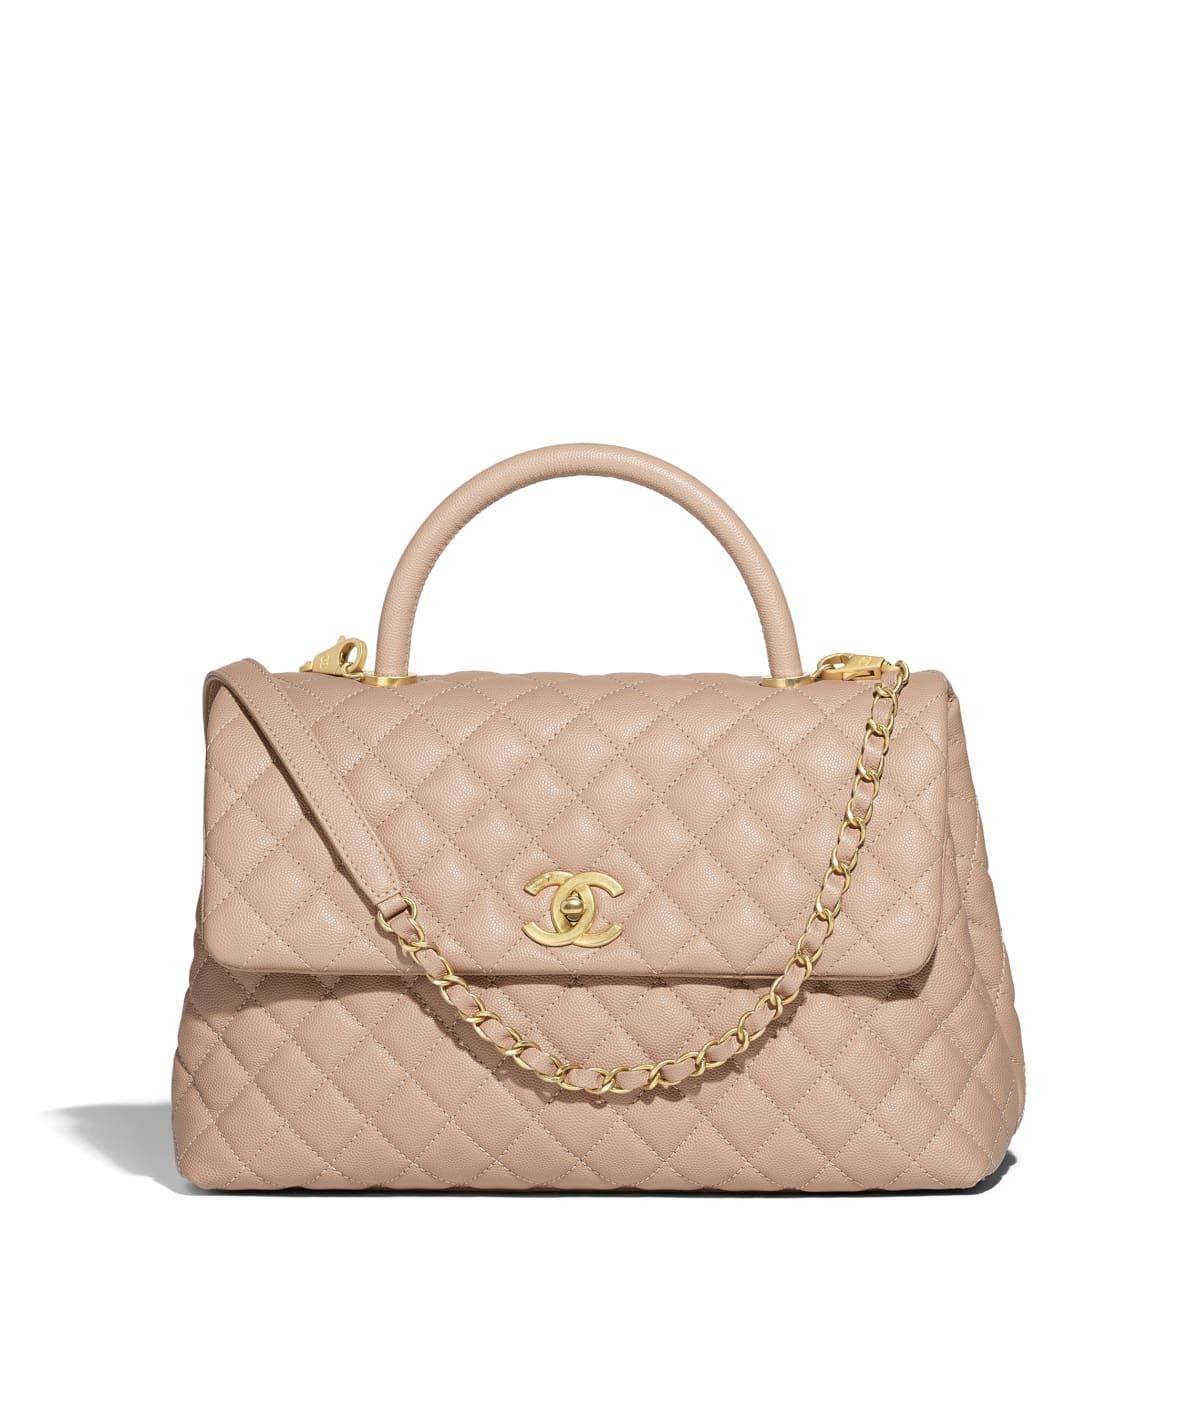 7047c9ca0d13 Handbags of the Spring-Summer 2018 CHANEL Fashion collection : Large Flap  Bag With Top Handle, calfskin & gold metal, beige on the CHANEL official  website.